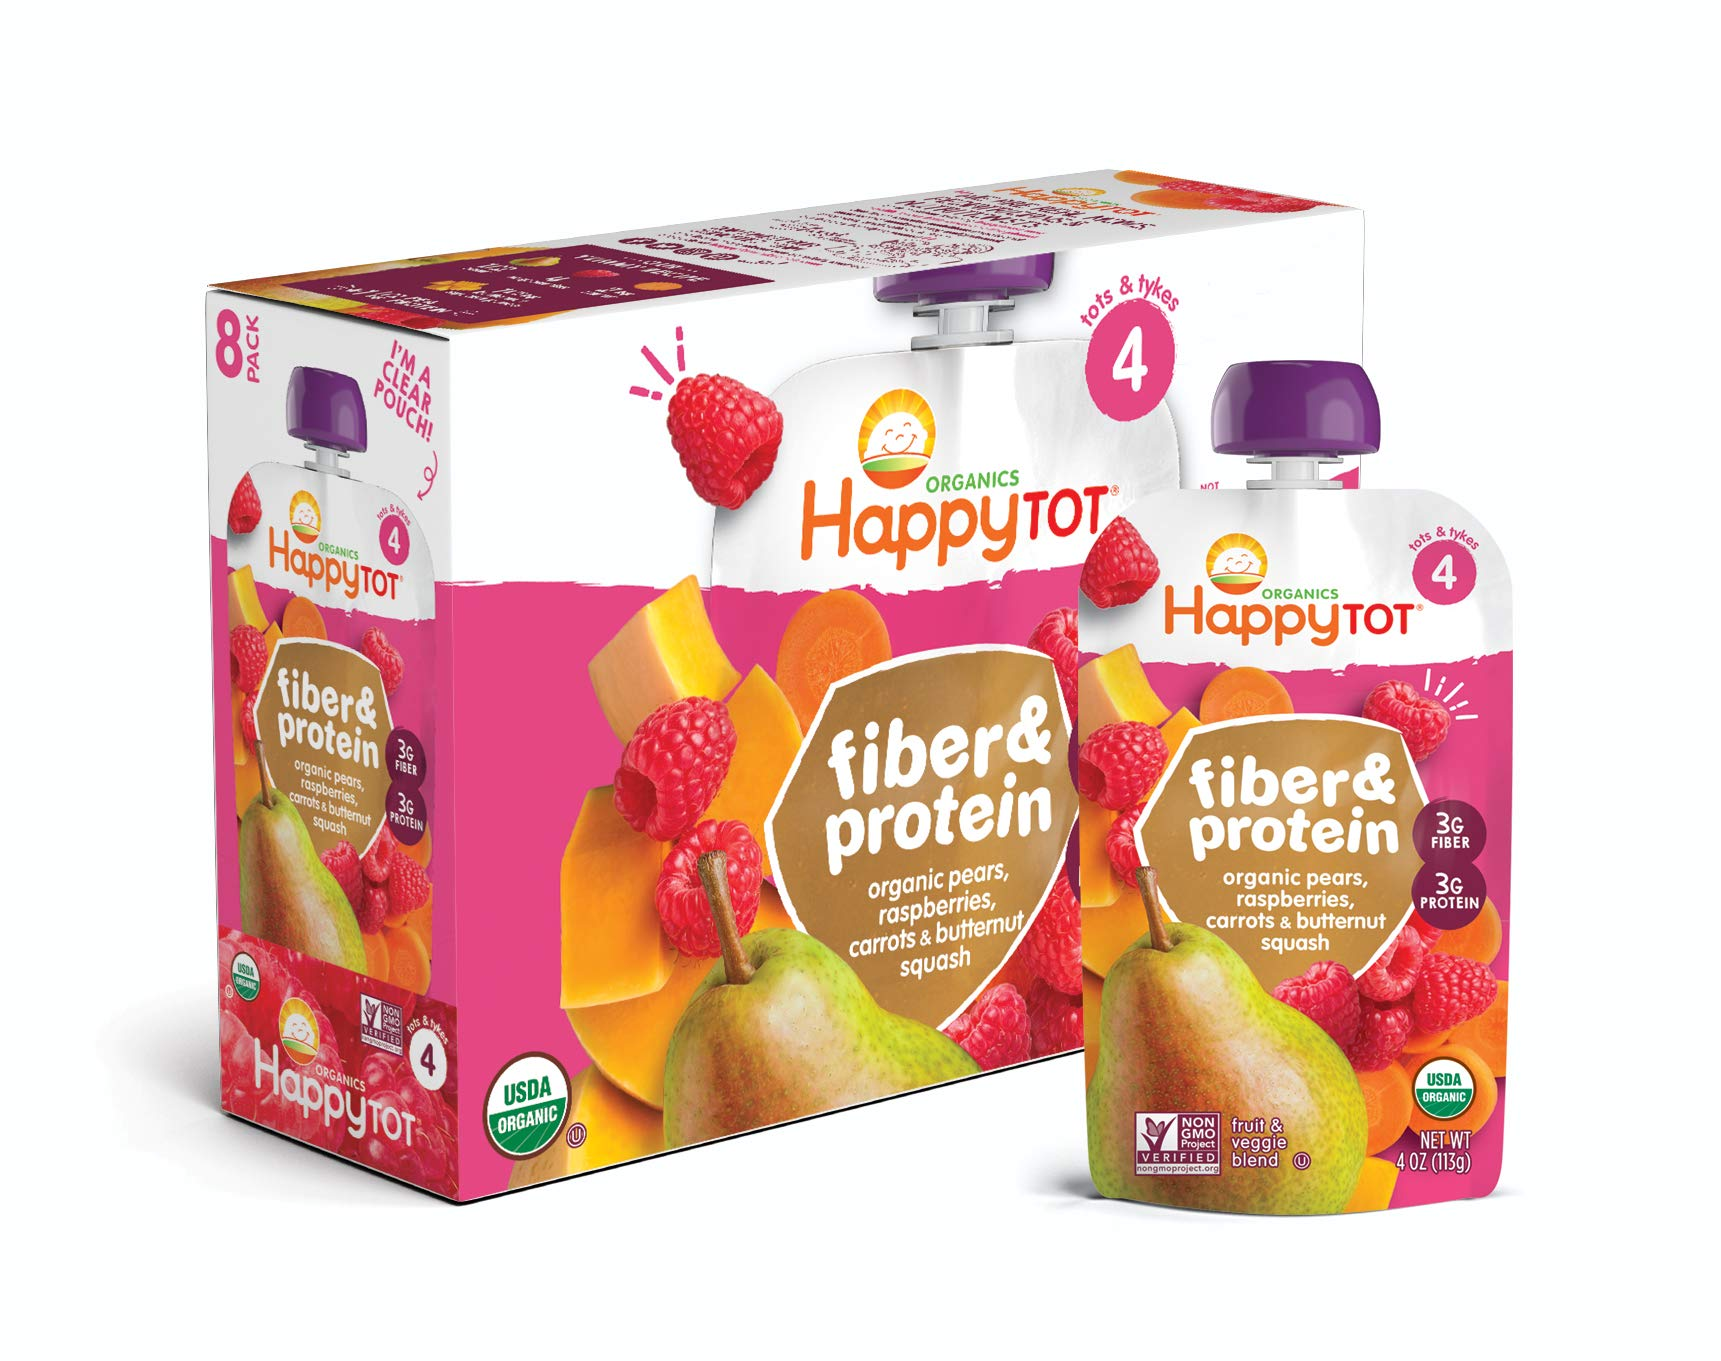 Happy Tot Organic Fiber & Protein Pouch Stage 4 Pears Raspberries Butternut Squash & Carrots, 4 Ounce Pouch (8 Pack) by Happy Baby